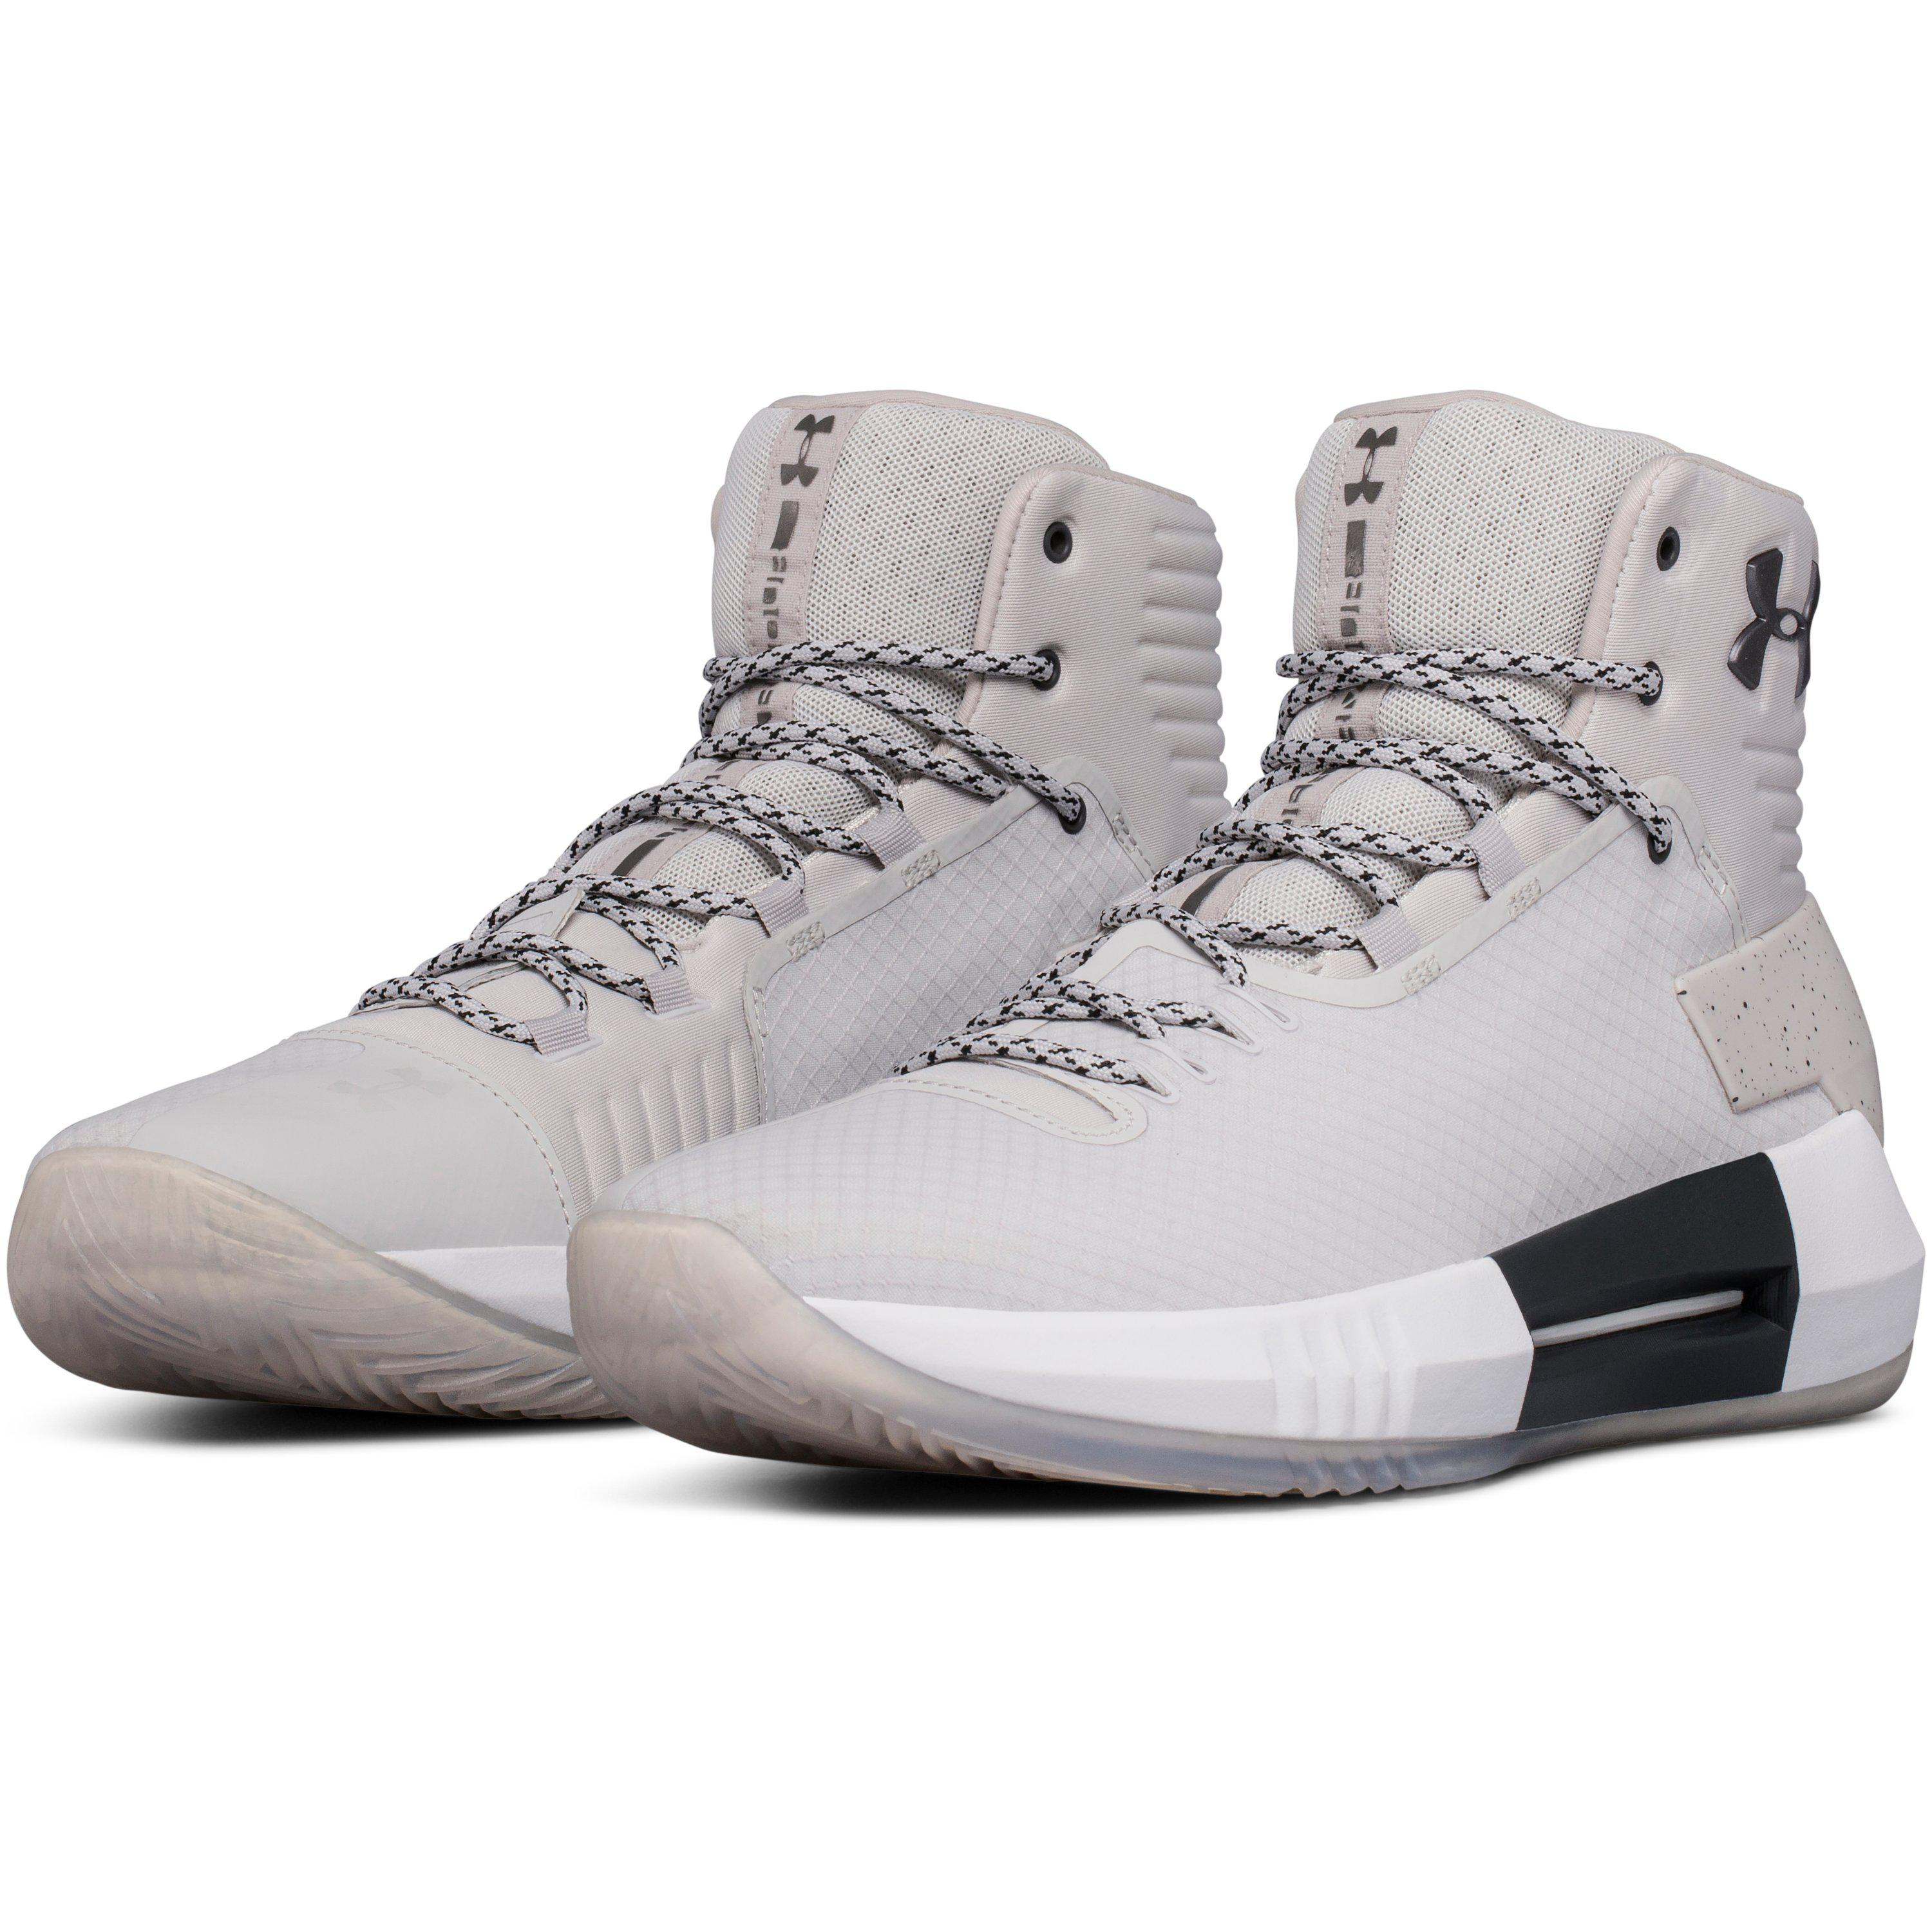 c509b317d89 ... clearance lyst under armour mens ua drive 4 x basketball shoes in gray  for men 88464